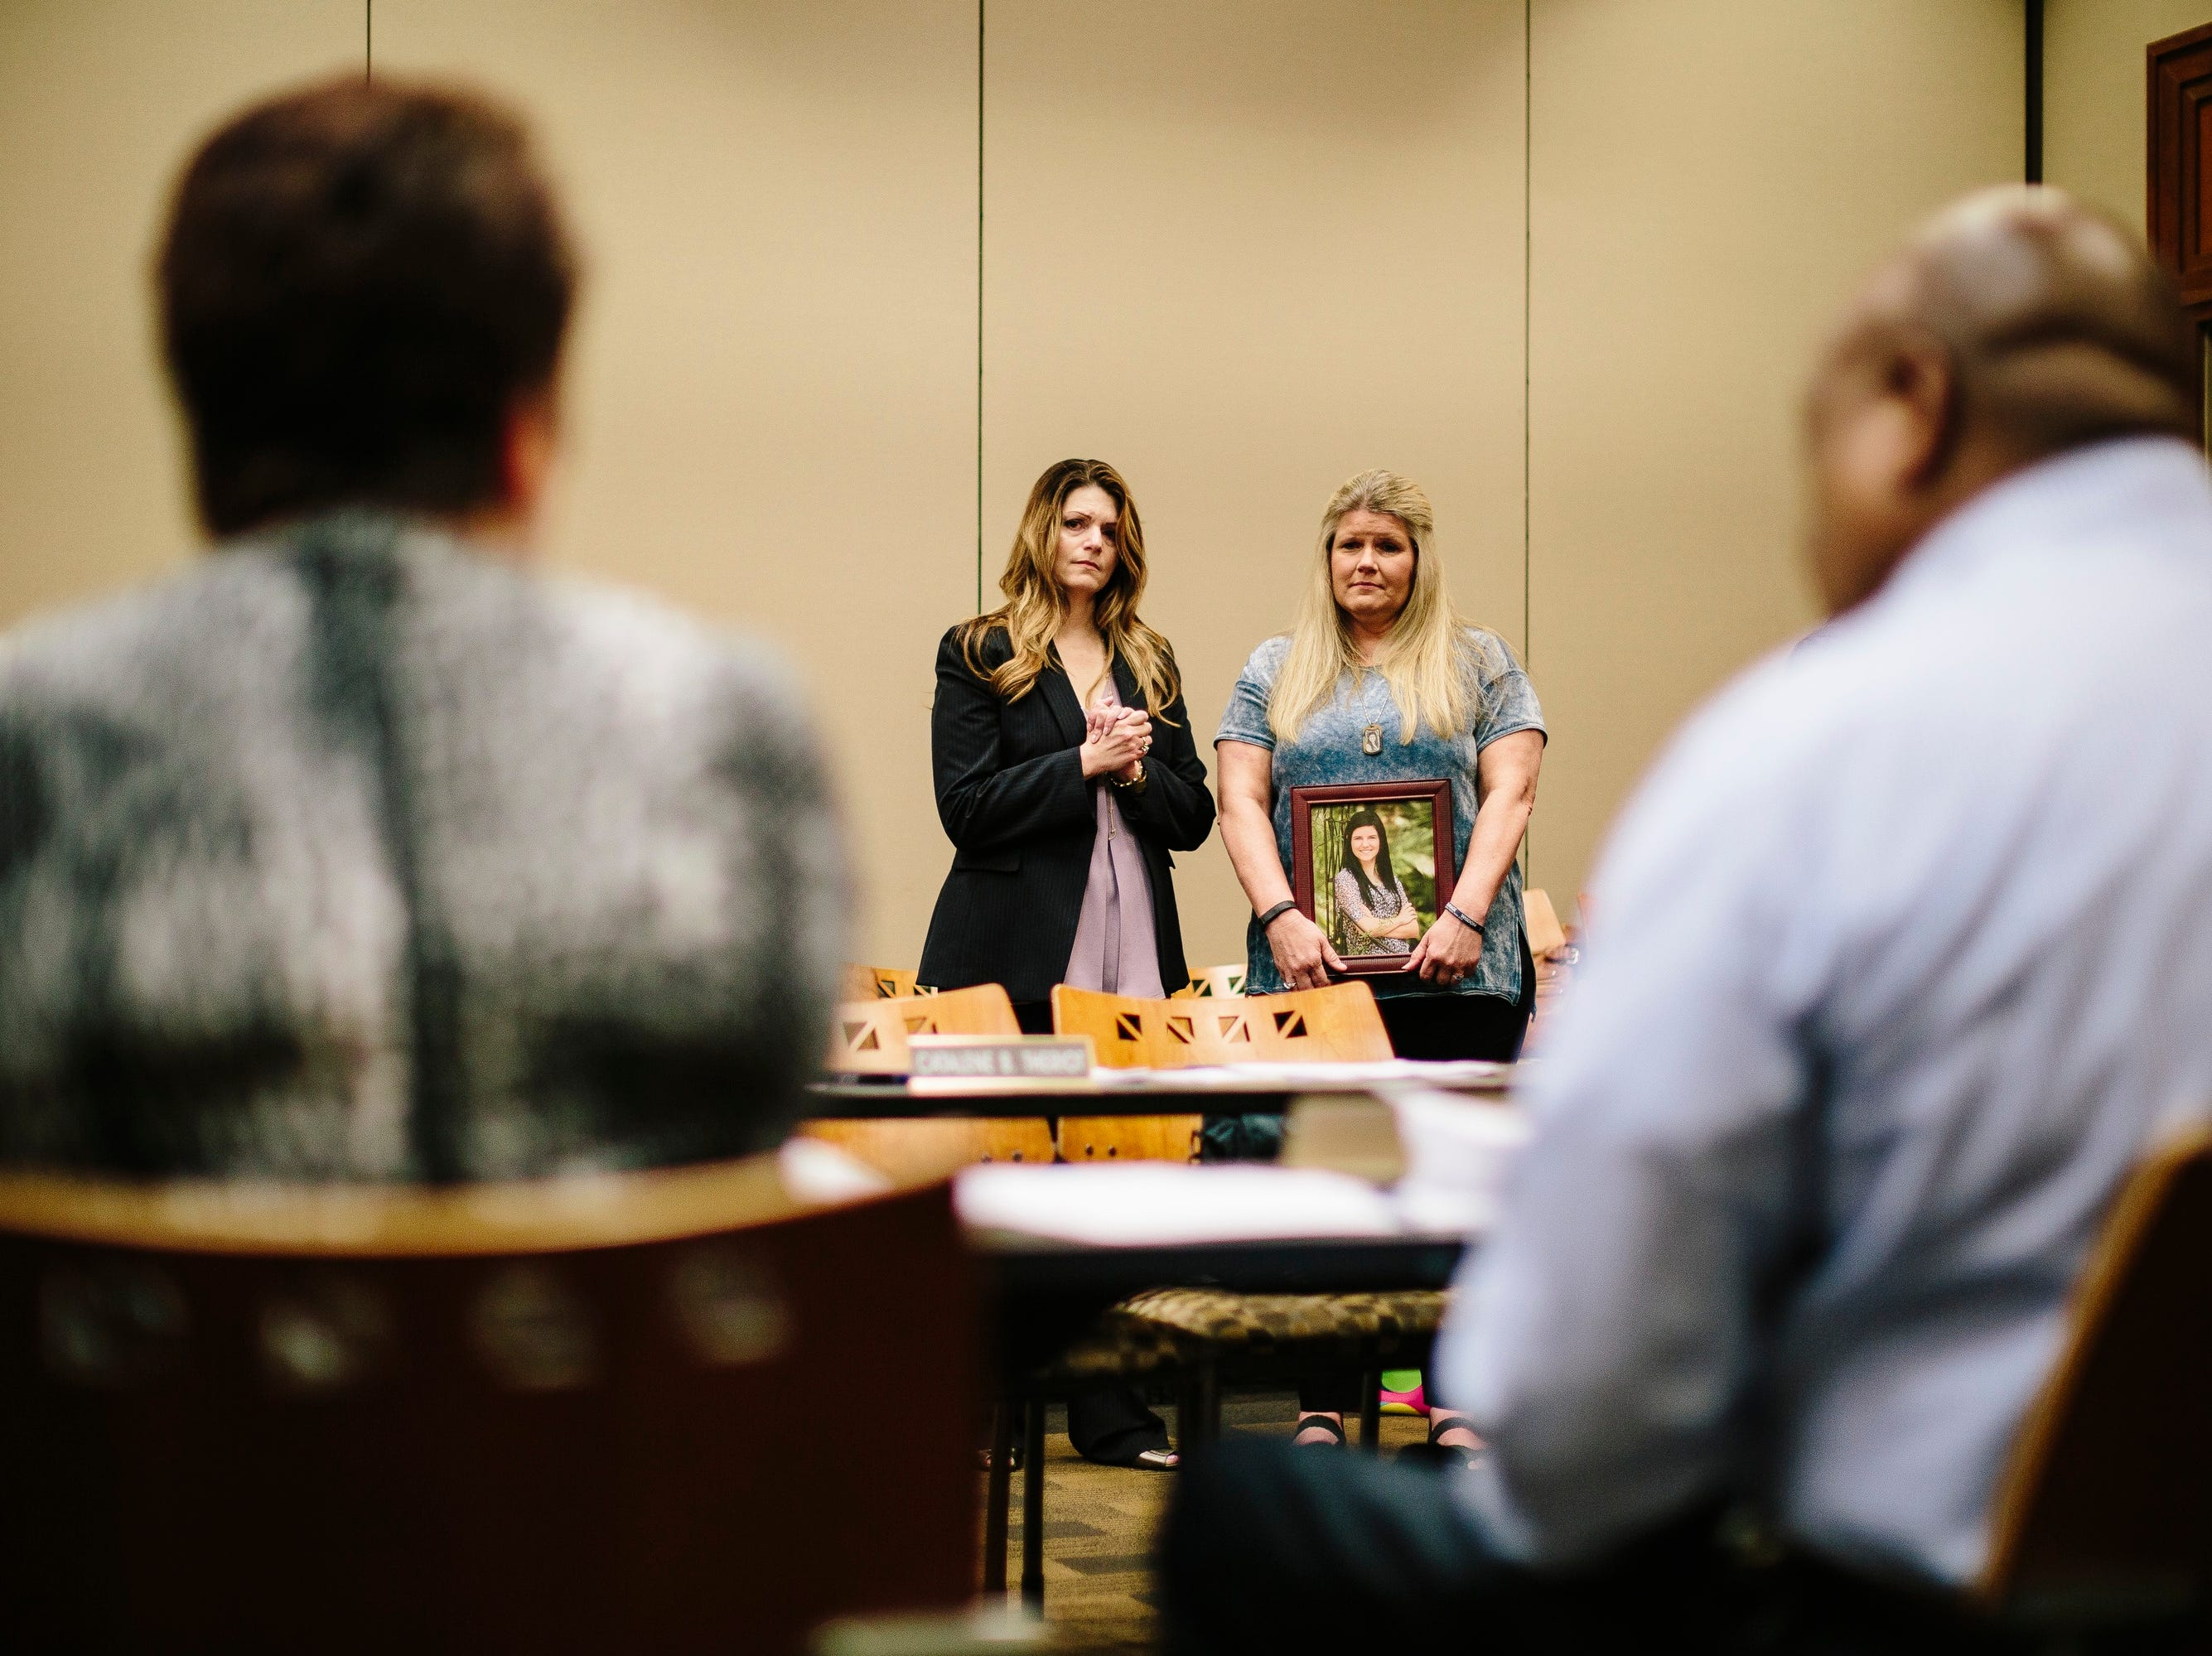 Jamie Reavis, right, of Jefferson Parish, Louisiana, holds a photograph of her daughter as she speaks during a meeting of the Louisiana Crime Victims Reparations Board on May 1, 2017 in Baton Rouge, Louisiana. Reavis' daughter Taylor Friloux was murdered during a robbery at a fast-food restaurant where she worked. At left is Nancy Michel, head of the Jefferson Parish District Attorney's Office Victim/Witness Assistance Division.